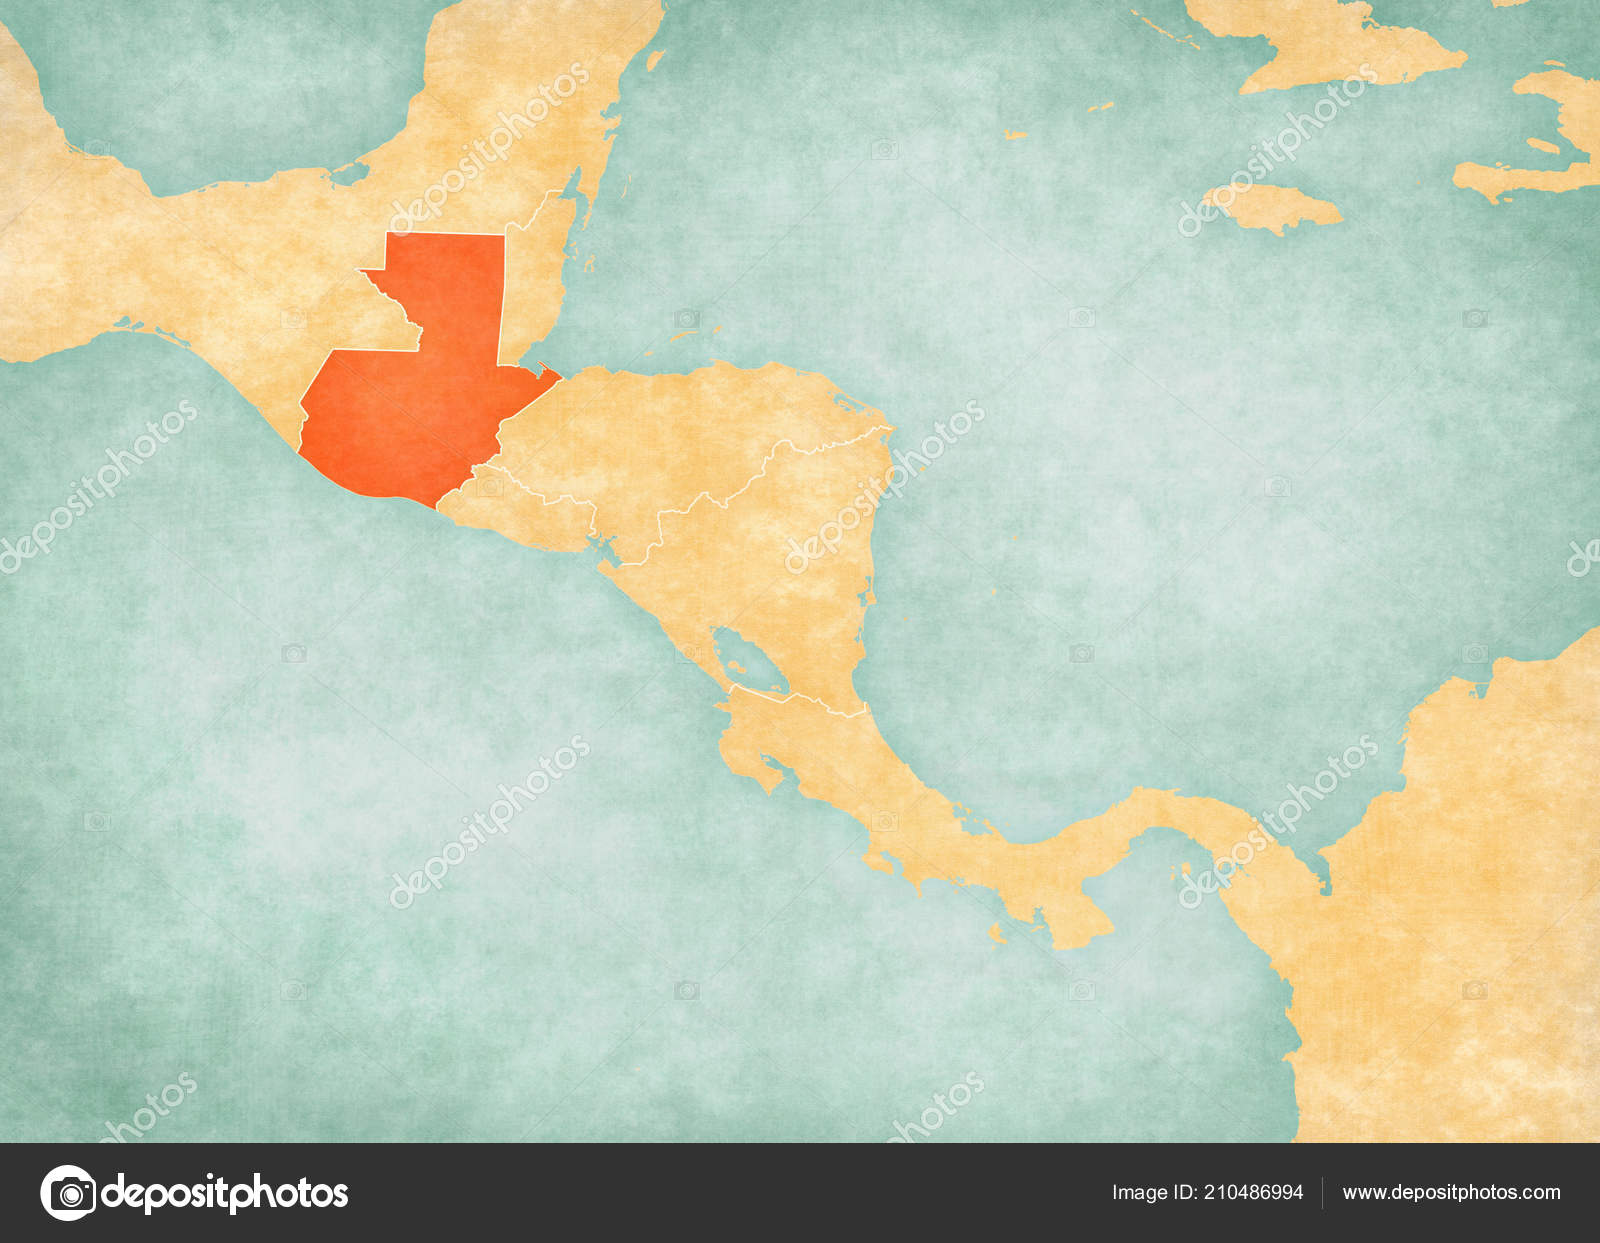 Guatemala Map Central America Soft Grunge Vintage Style Old ...